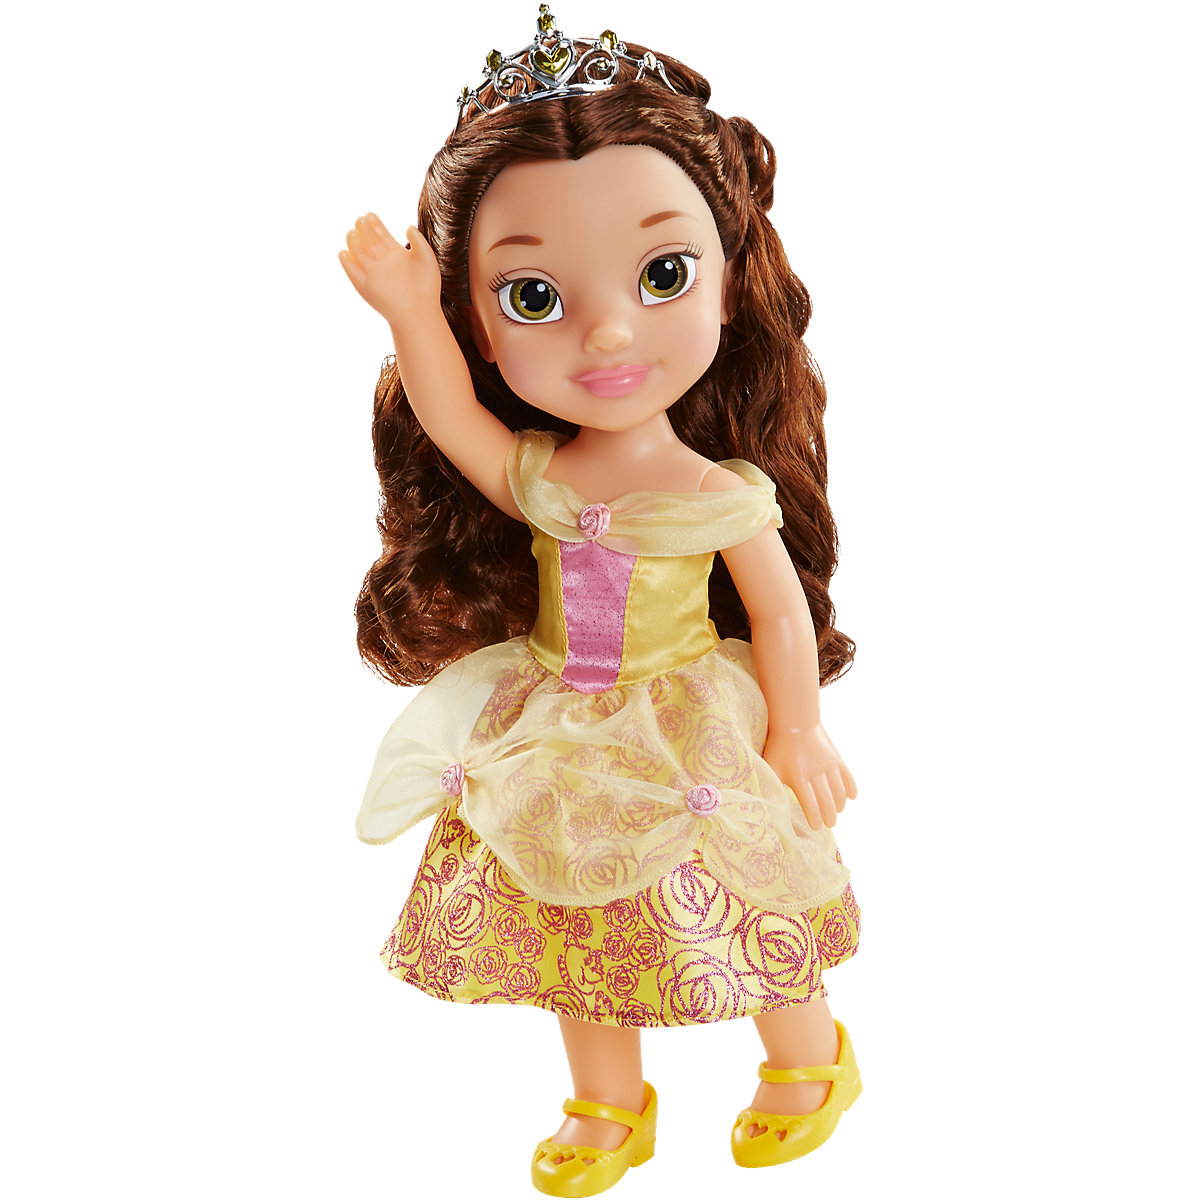 Jakks Pacific Disney Princess panenka Bella 35cm 99543